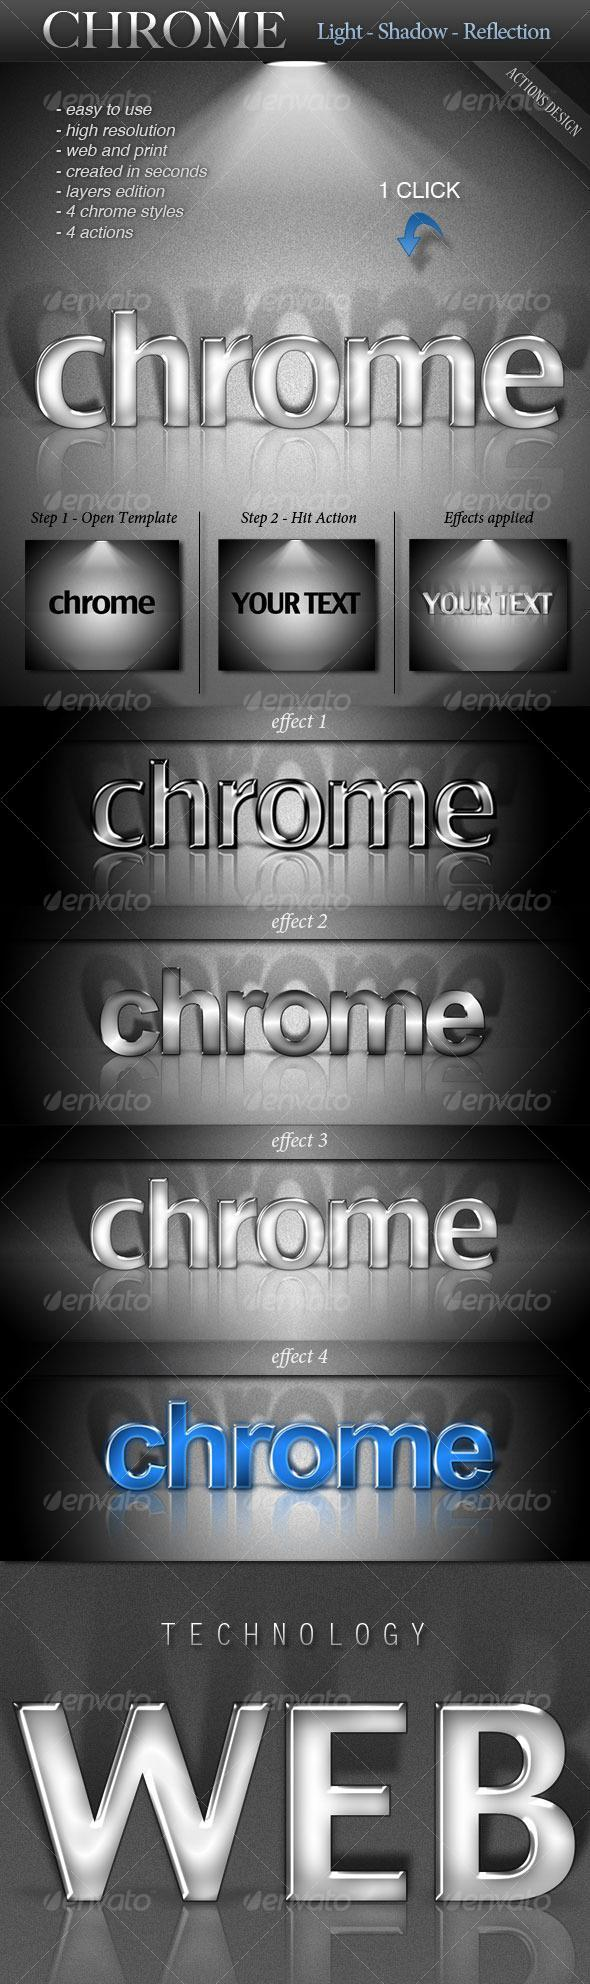 Chrome Text Light Shadow Reflection Photoshop Action